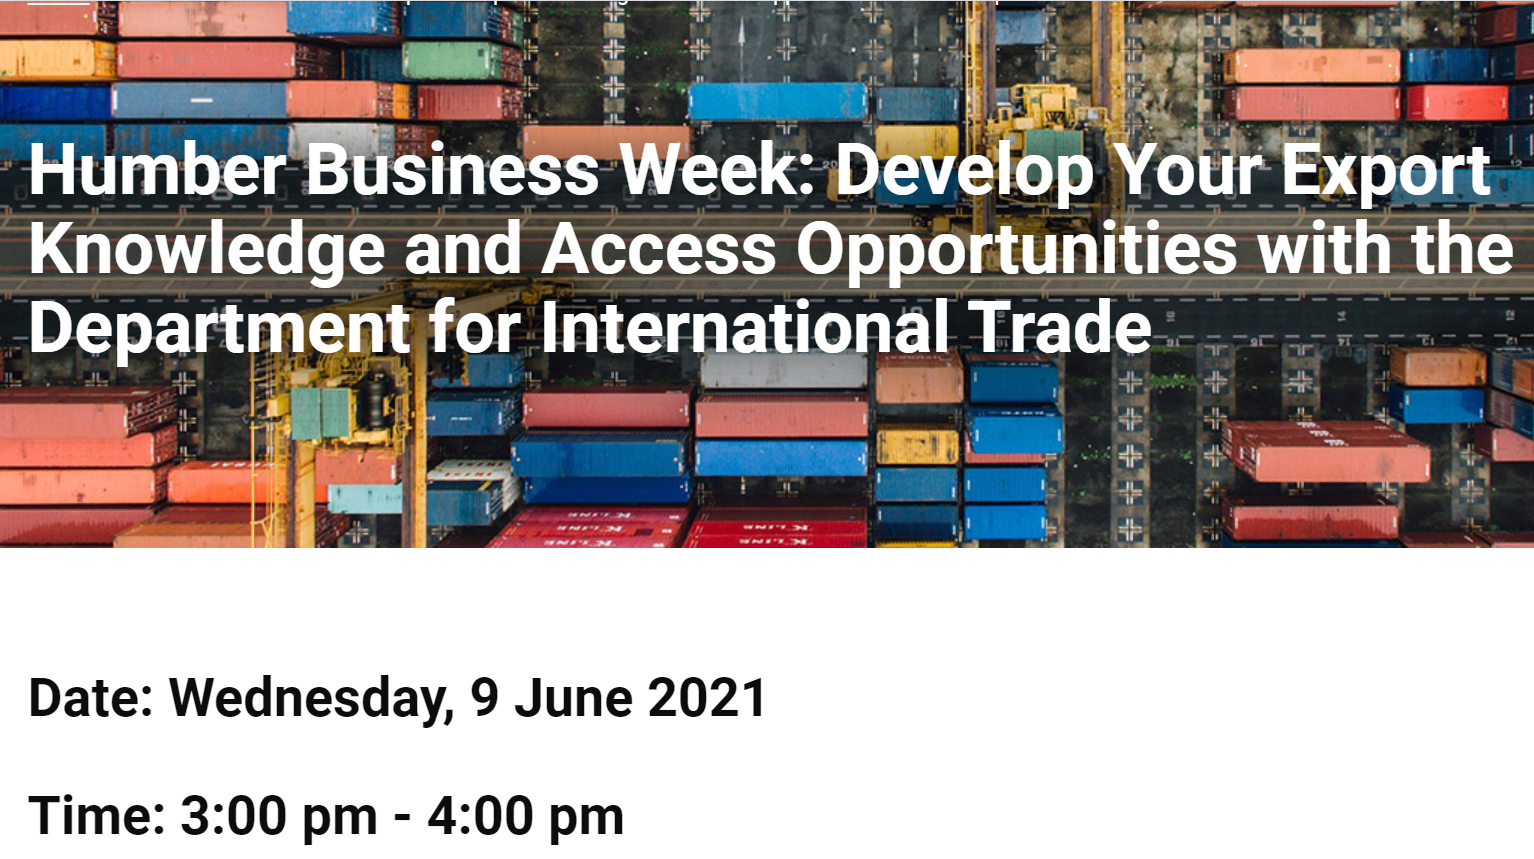 Develop Your Export Knowledge and Access Opportunities with the Department for International Trade